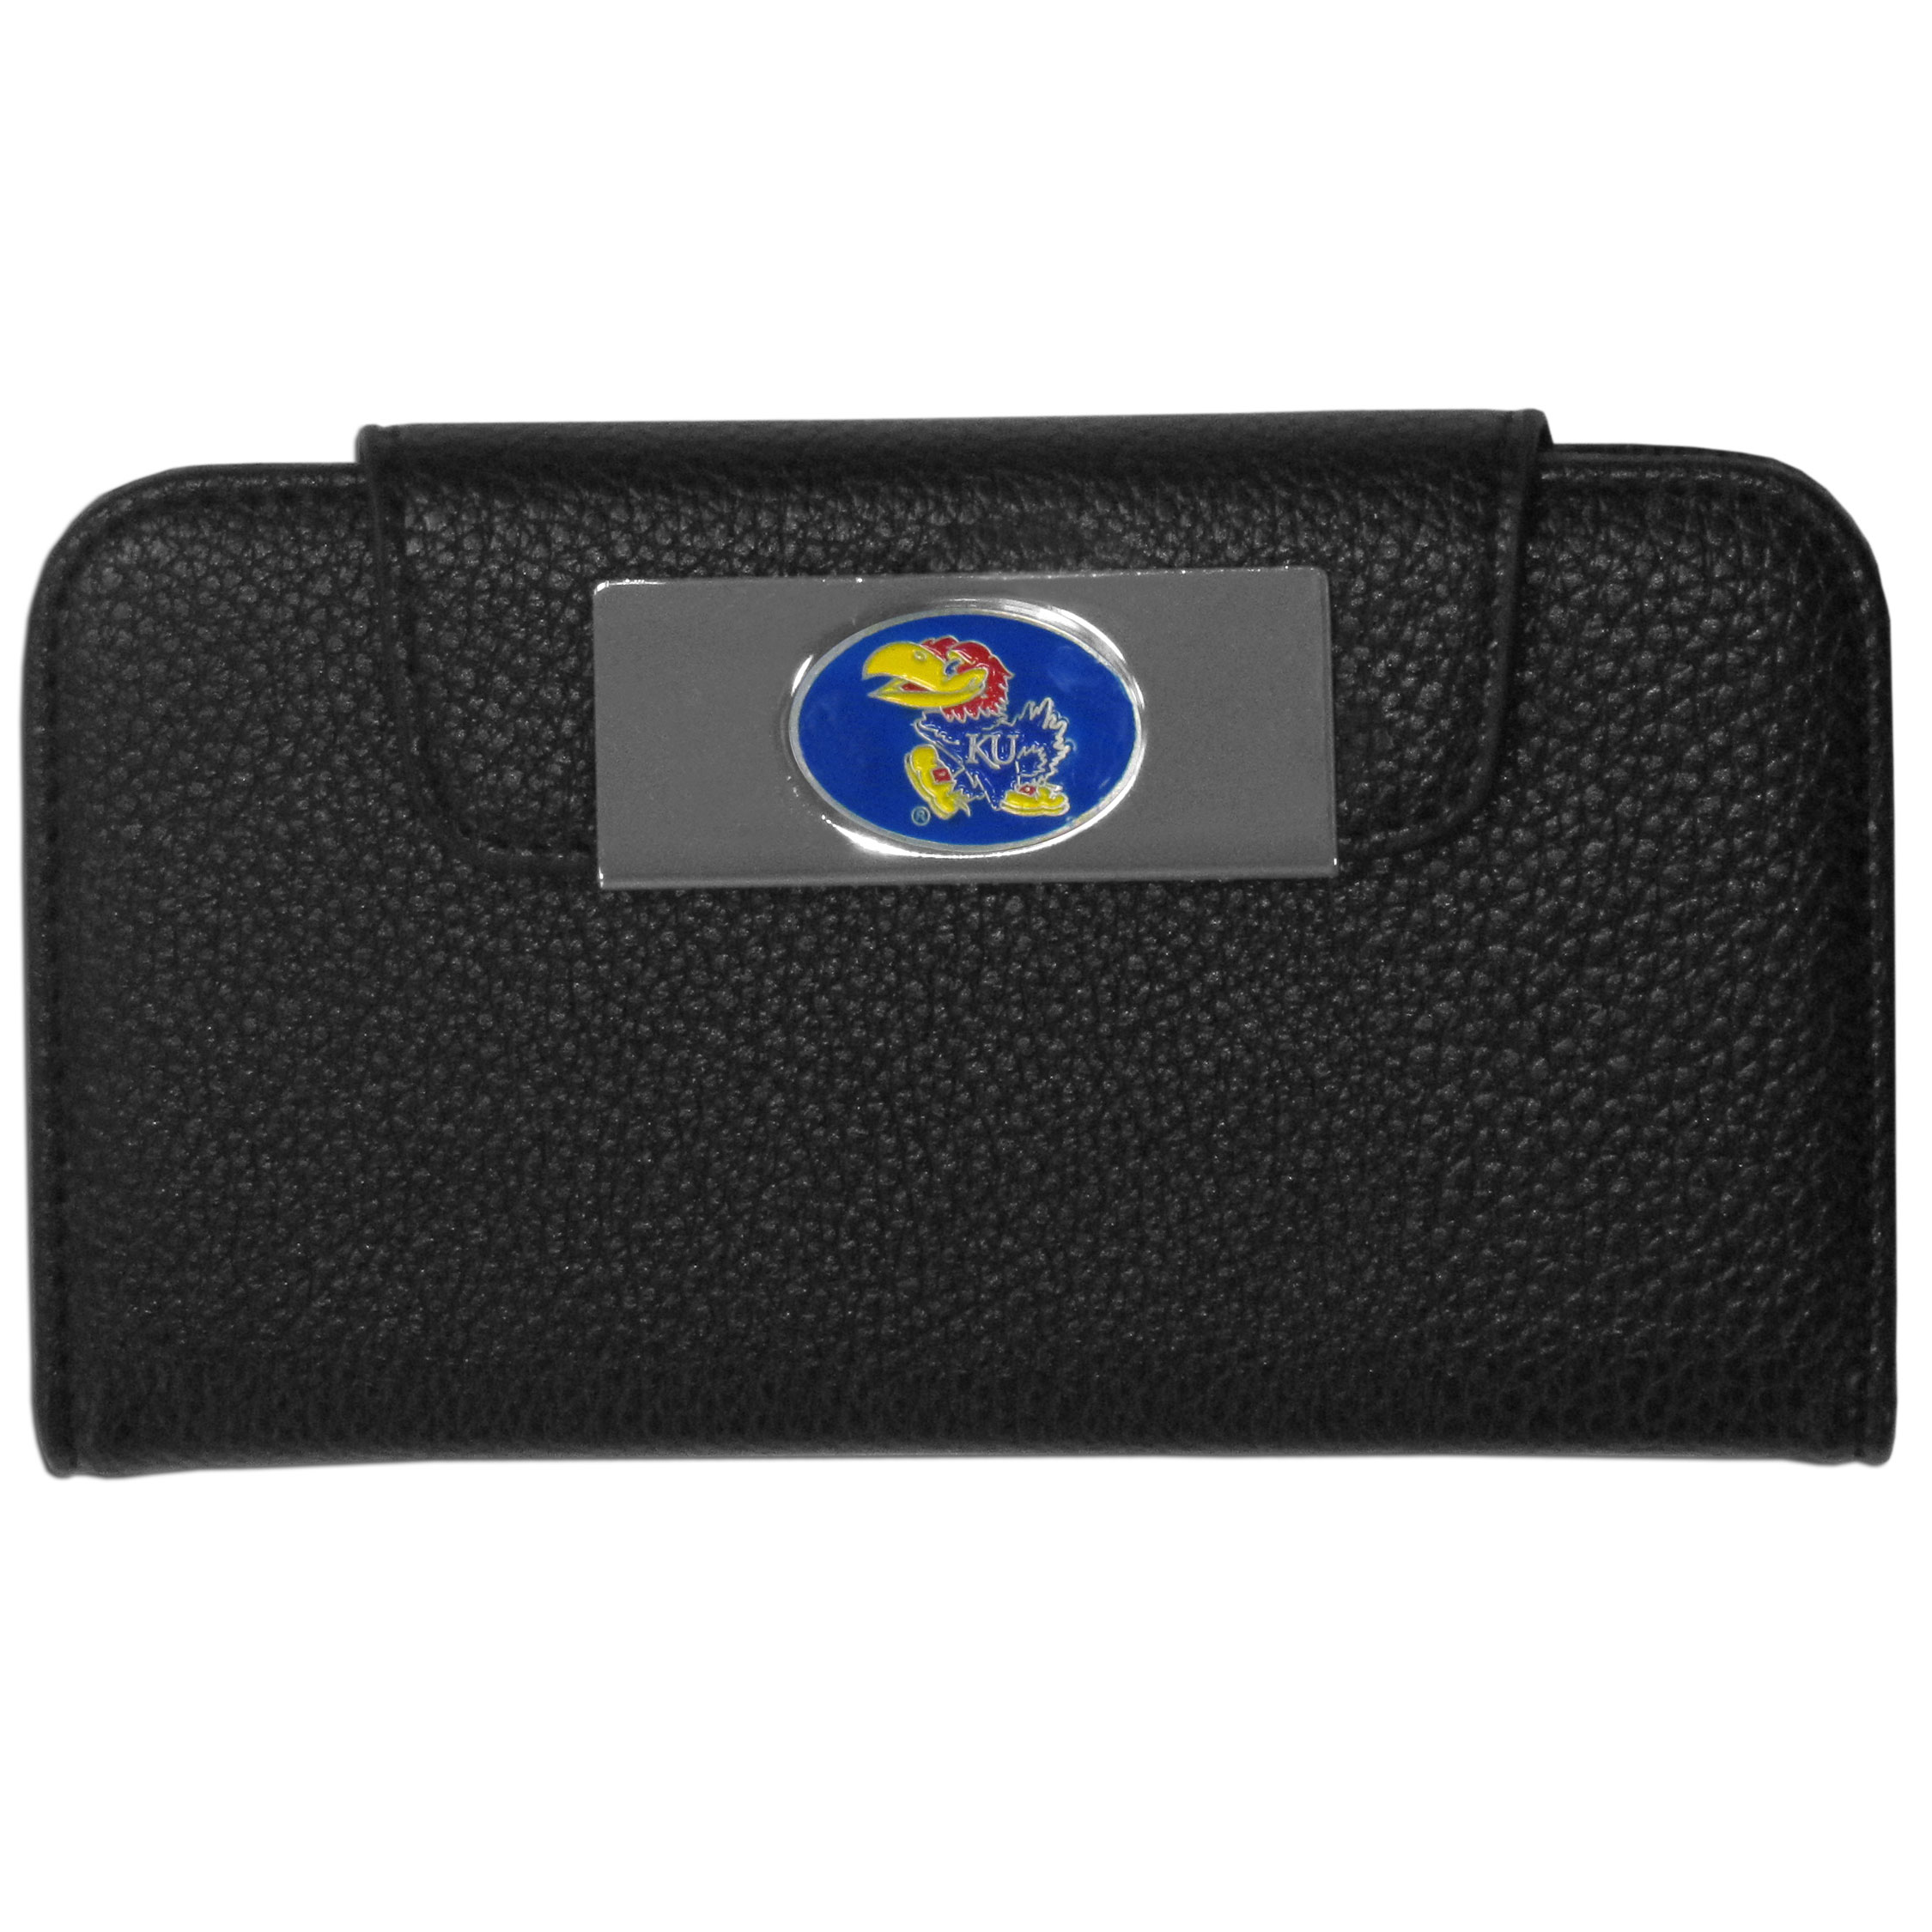 Kansas Jayhawks iPhone 5/5S Wallet Case - This new & wildly popular case is ideal for those who like to travel light! The stylish case has an inner hard shell that securely holds your phone while allowing complete access to the phone's functionality. The flip cover has slots for credit cards, business cards and identification. The magnetic flip cover has a metal Kansas Jayhawks emblem on a high polish chrome backing. Fits the iPhone 5/5S